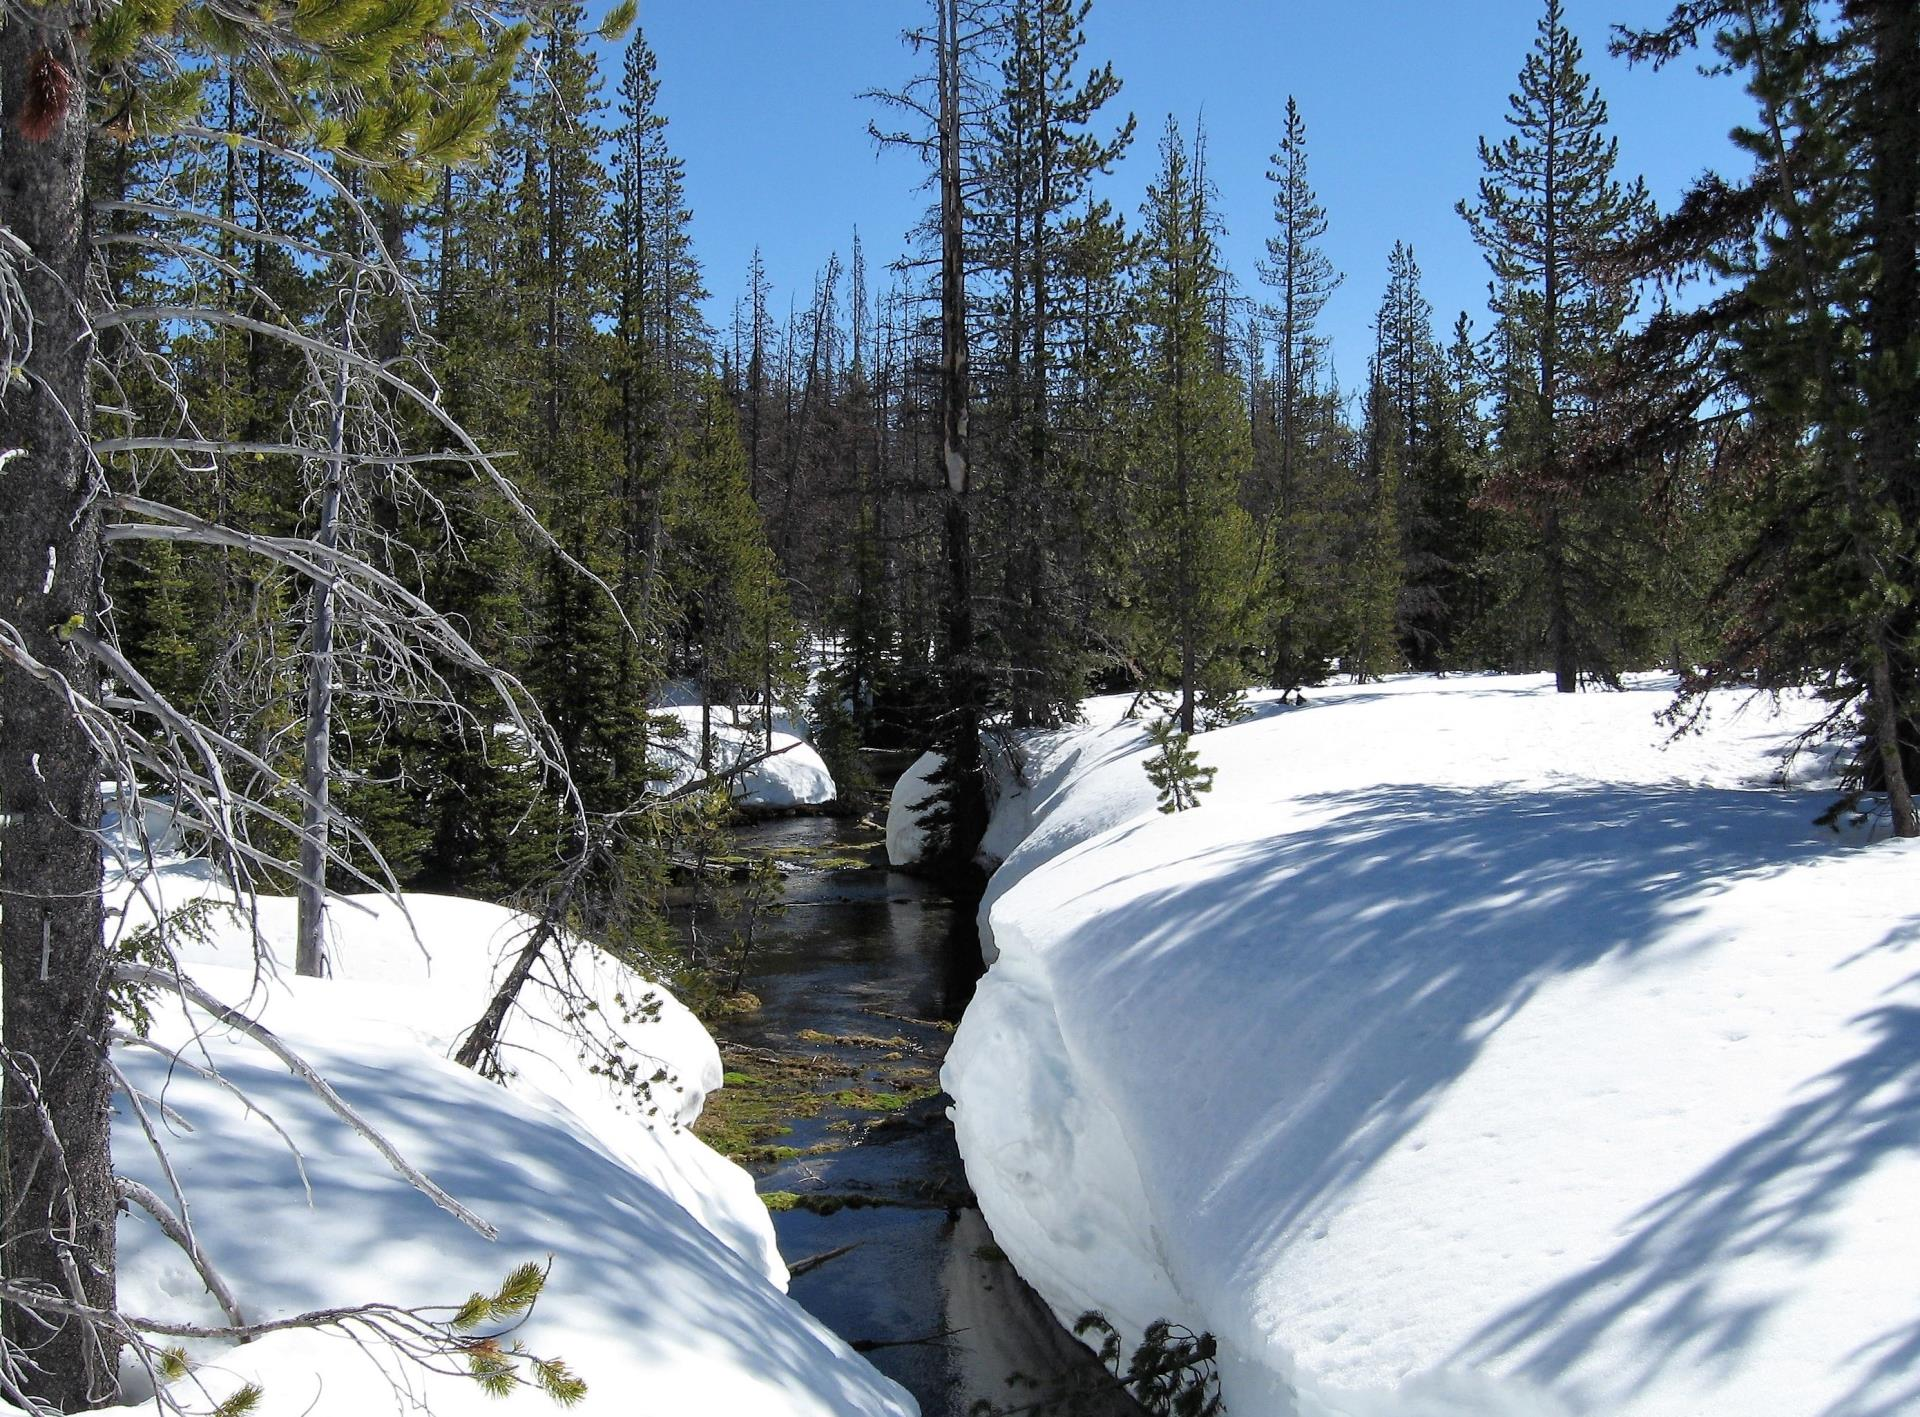 A photo of a snow covered landscape at the Bend Municipal Watershed